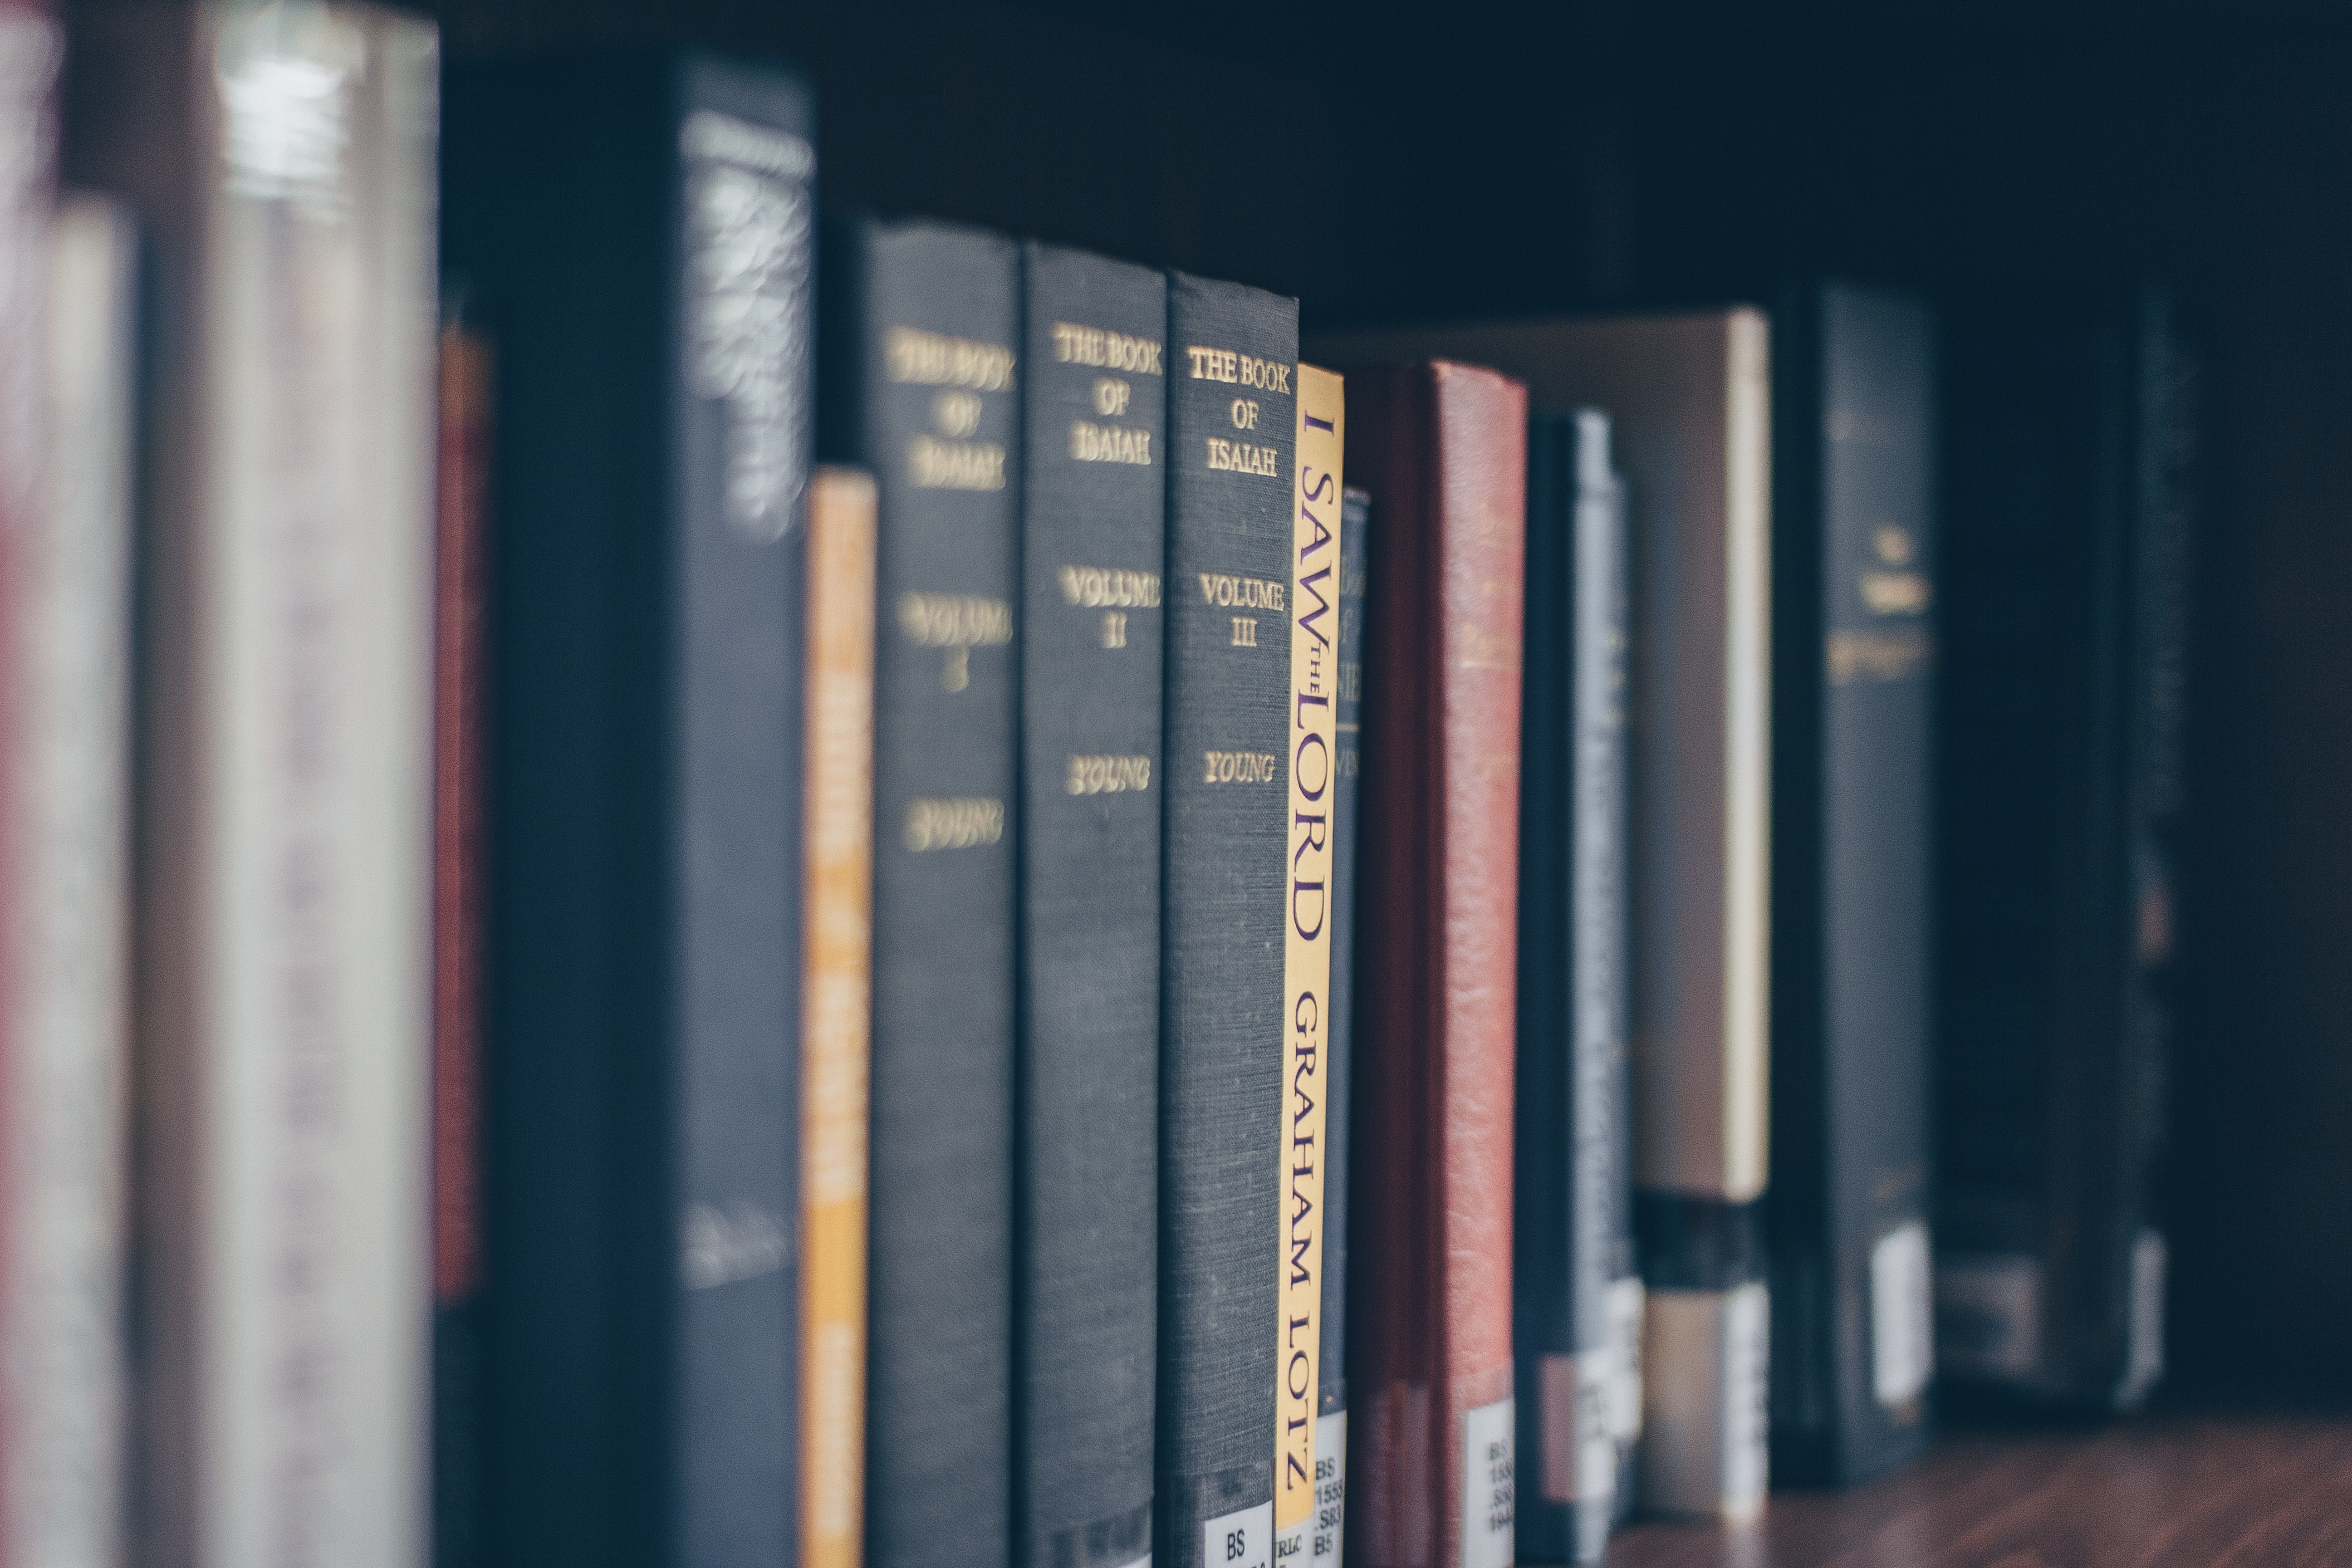 Books in Black Wooden Book Shelf · Free Stock Photo